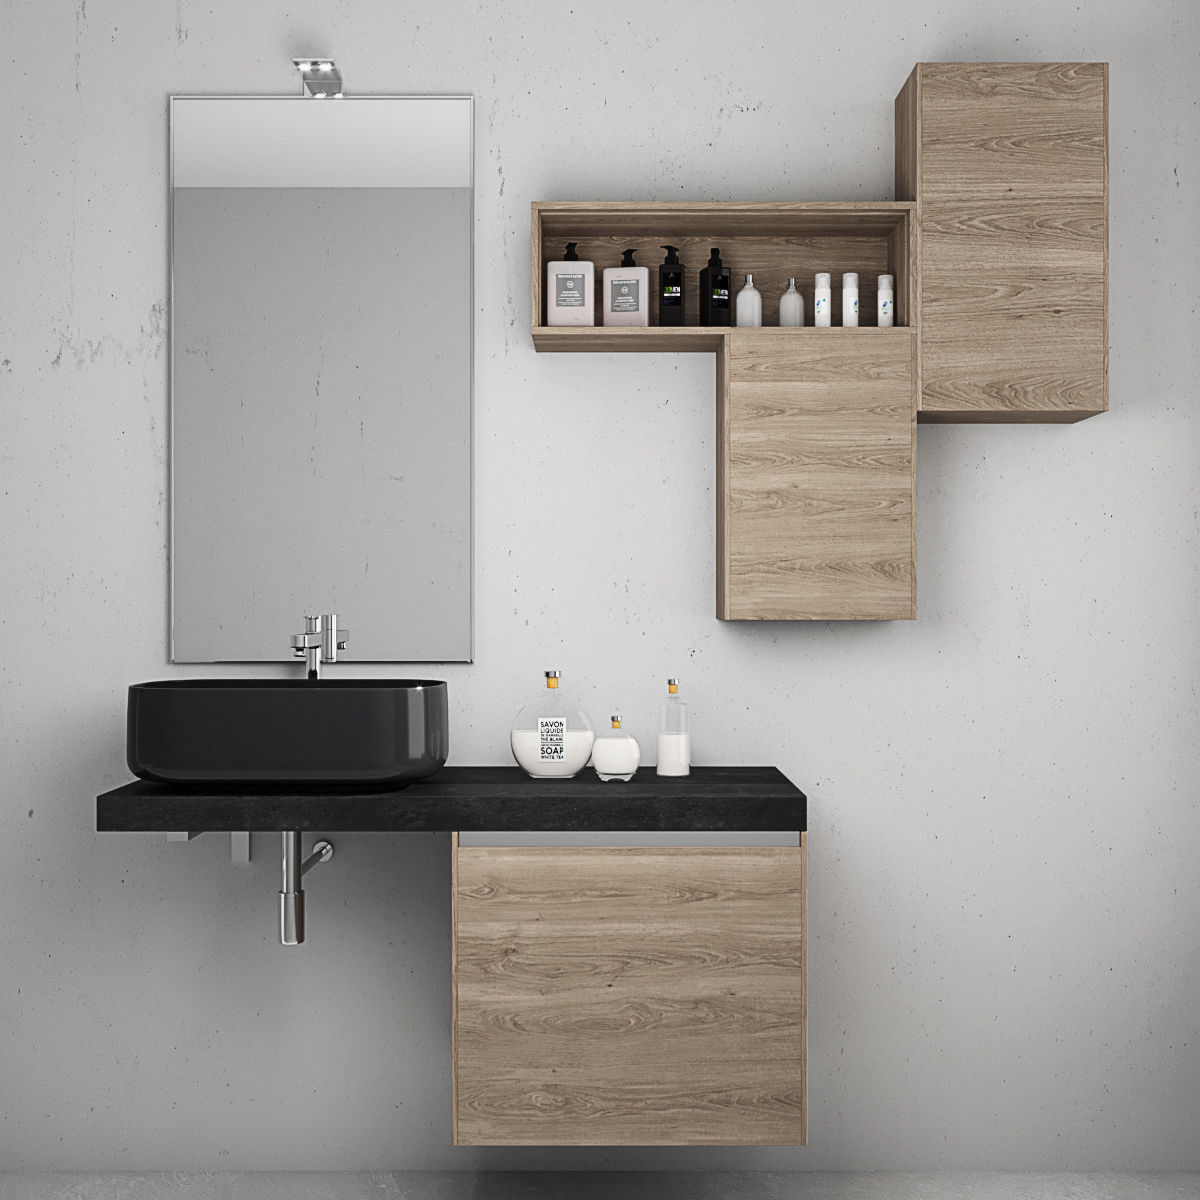 Bathroom furniture set Arcom eGo 3 3D | CGTrader